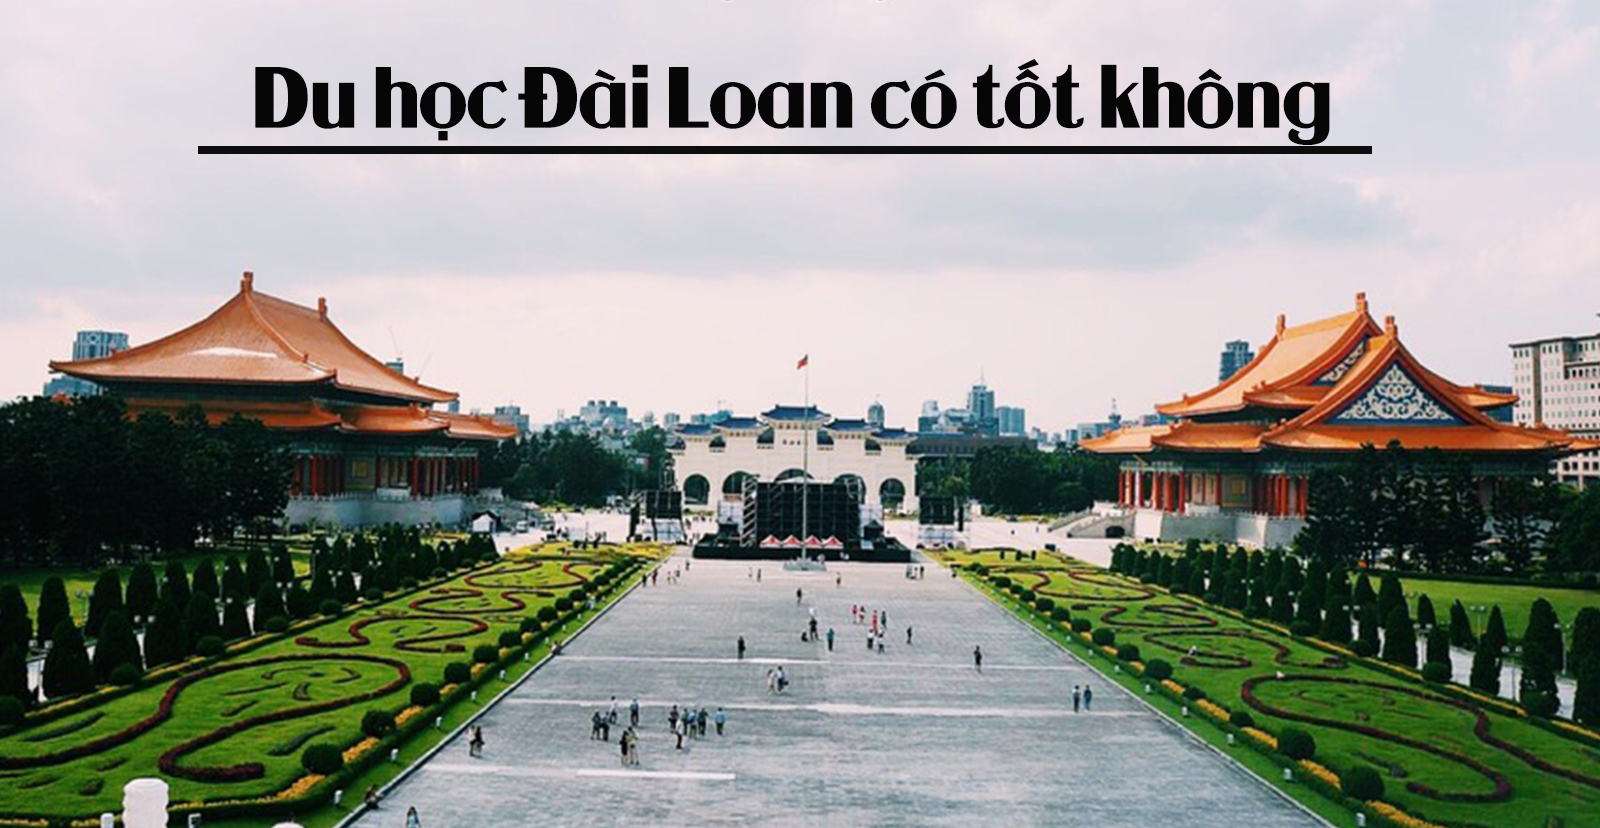 du-hoc-dai-loan-co-tot-khong